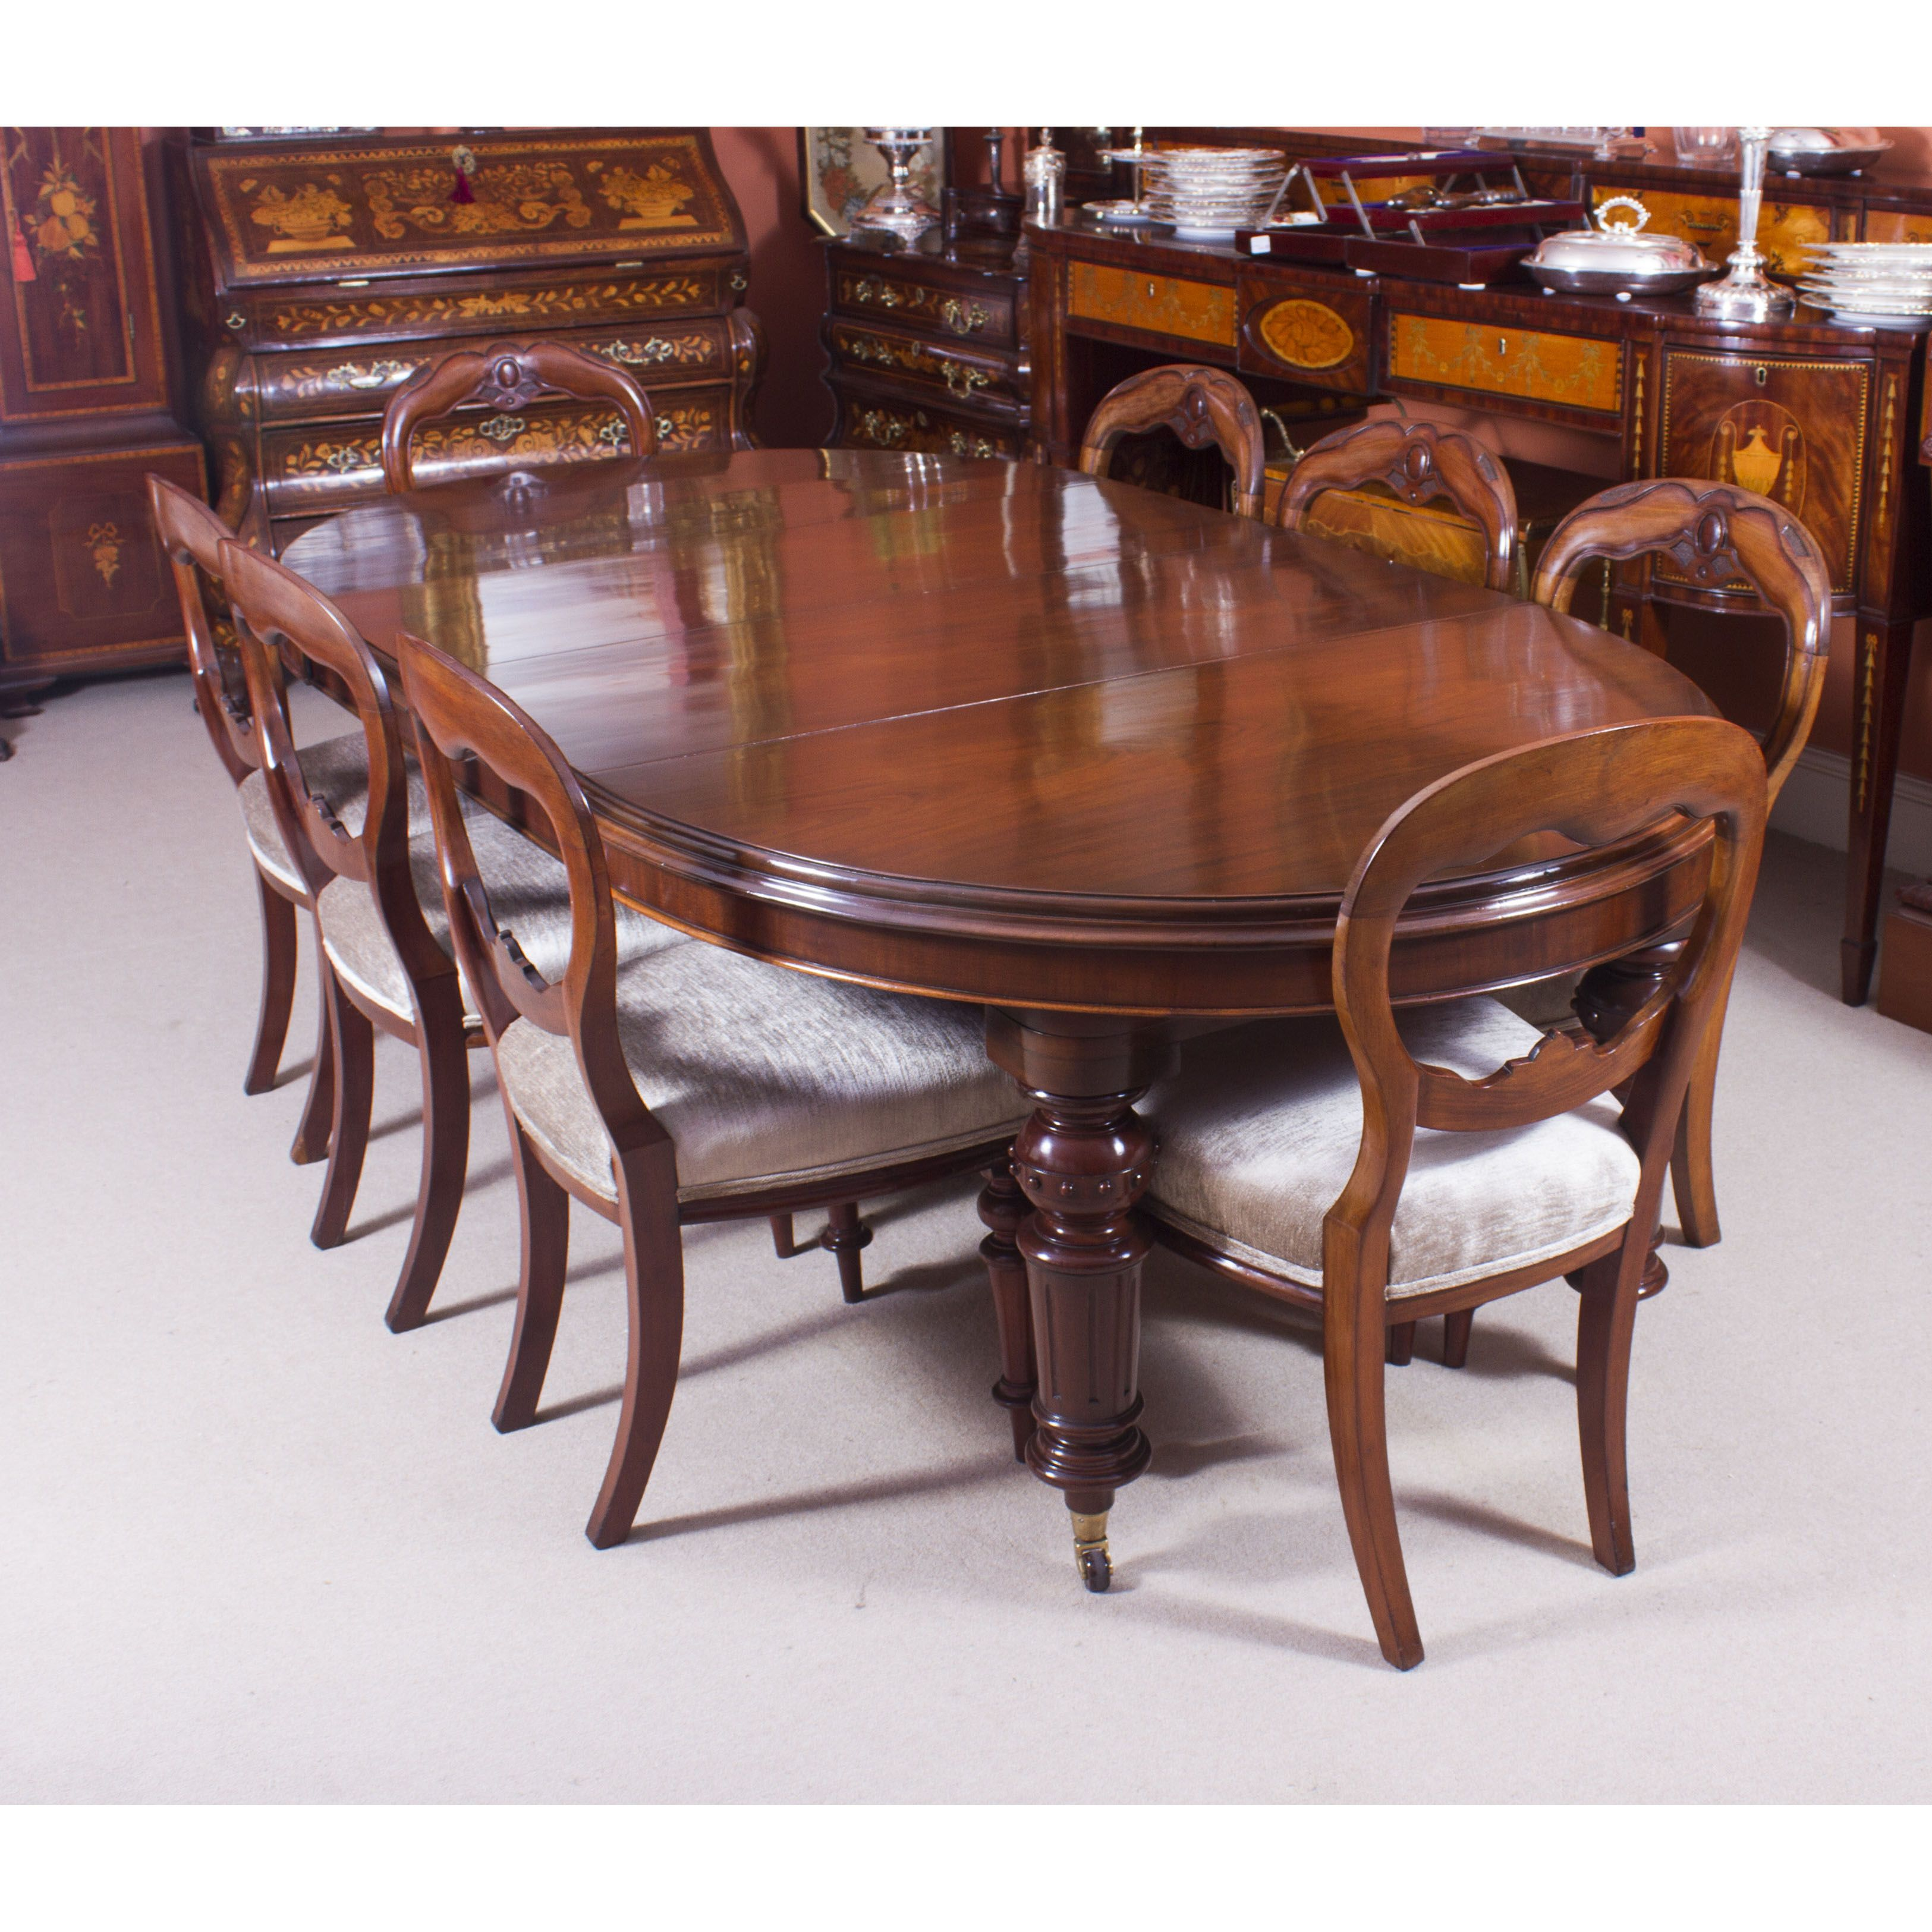 Antique Victorian Oval Dining Table 8 Antique Chairs C 1870